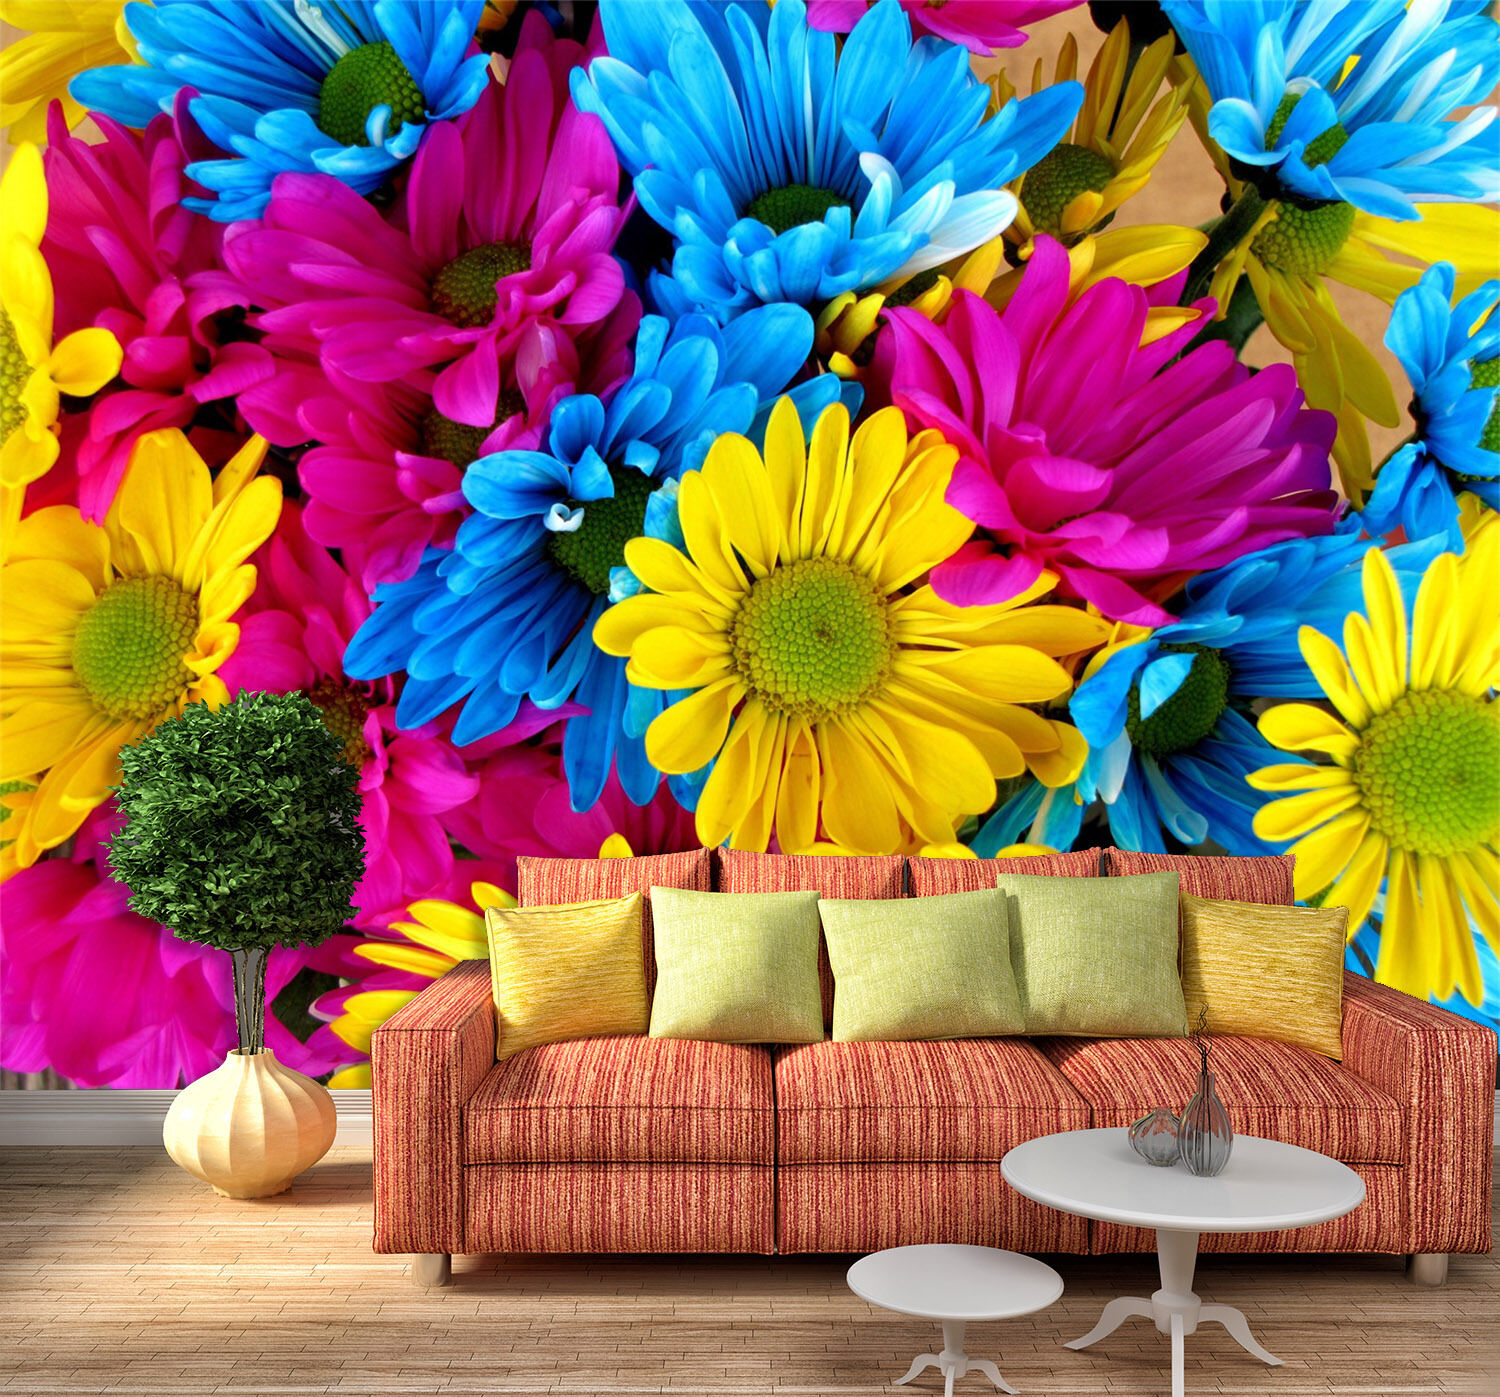 3D flower color picture art Wall Paper Print Decal Wall Deco Indoor wall Mural